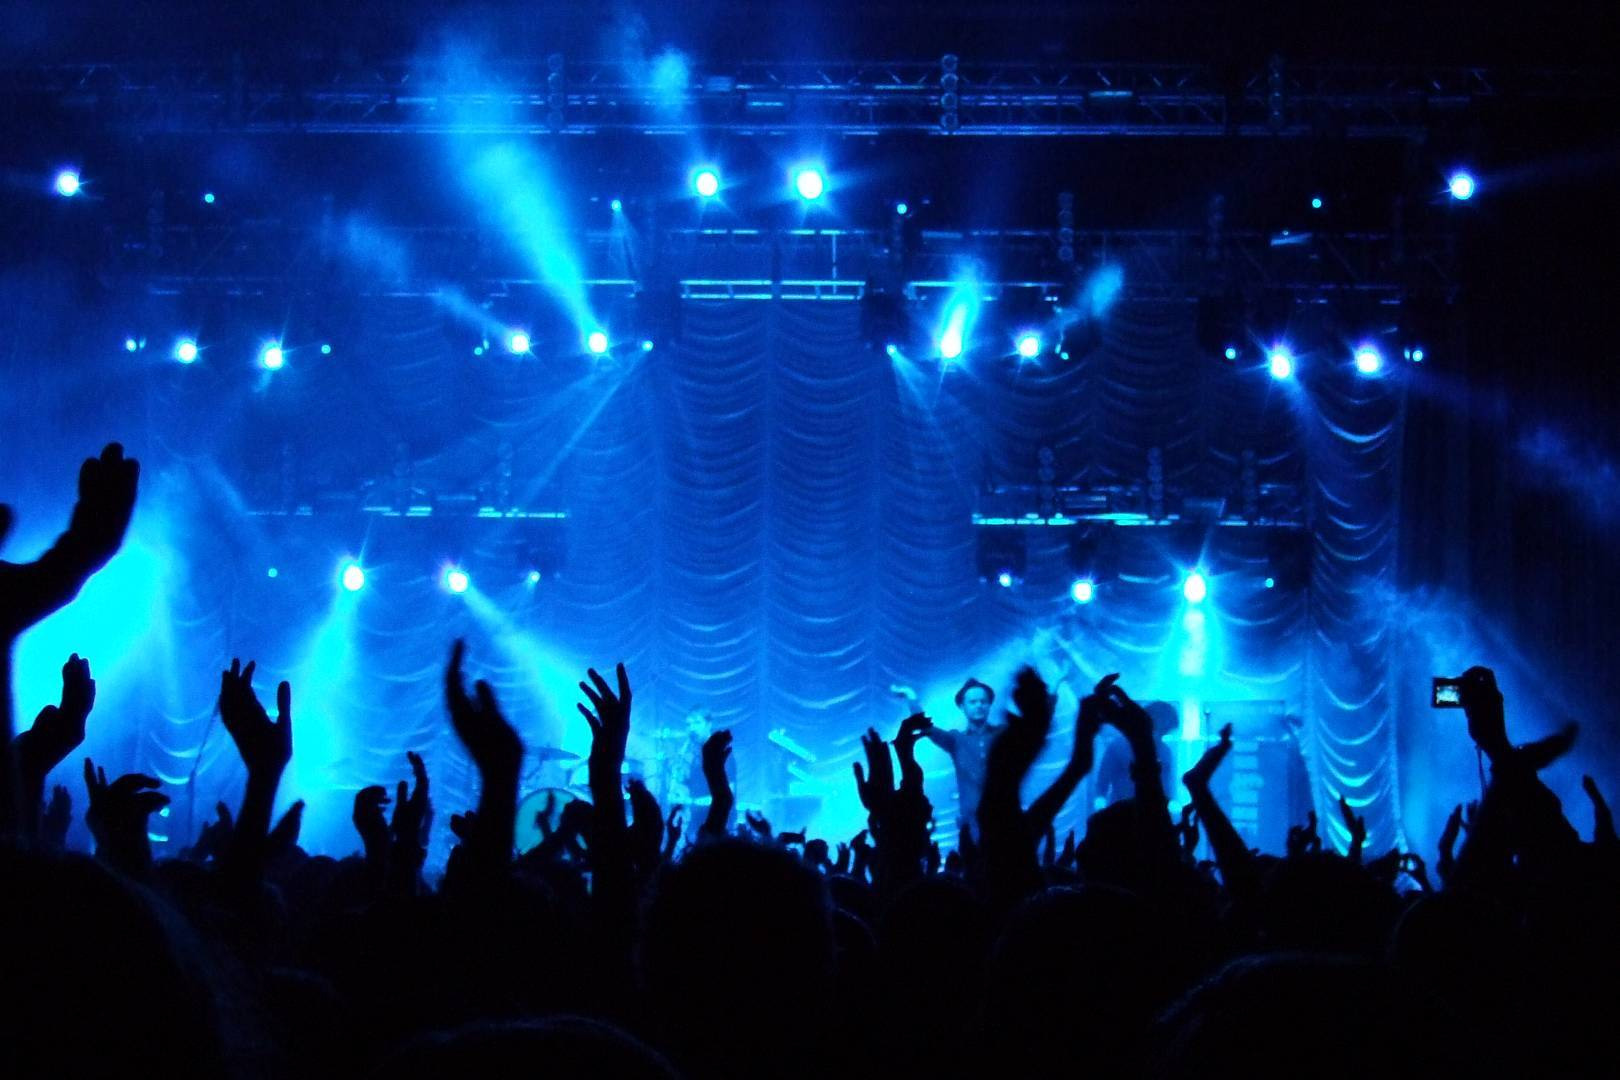 Octa Android IPhone And IPad Mobile Apps For Concert Going